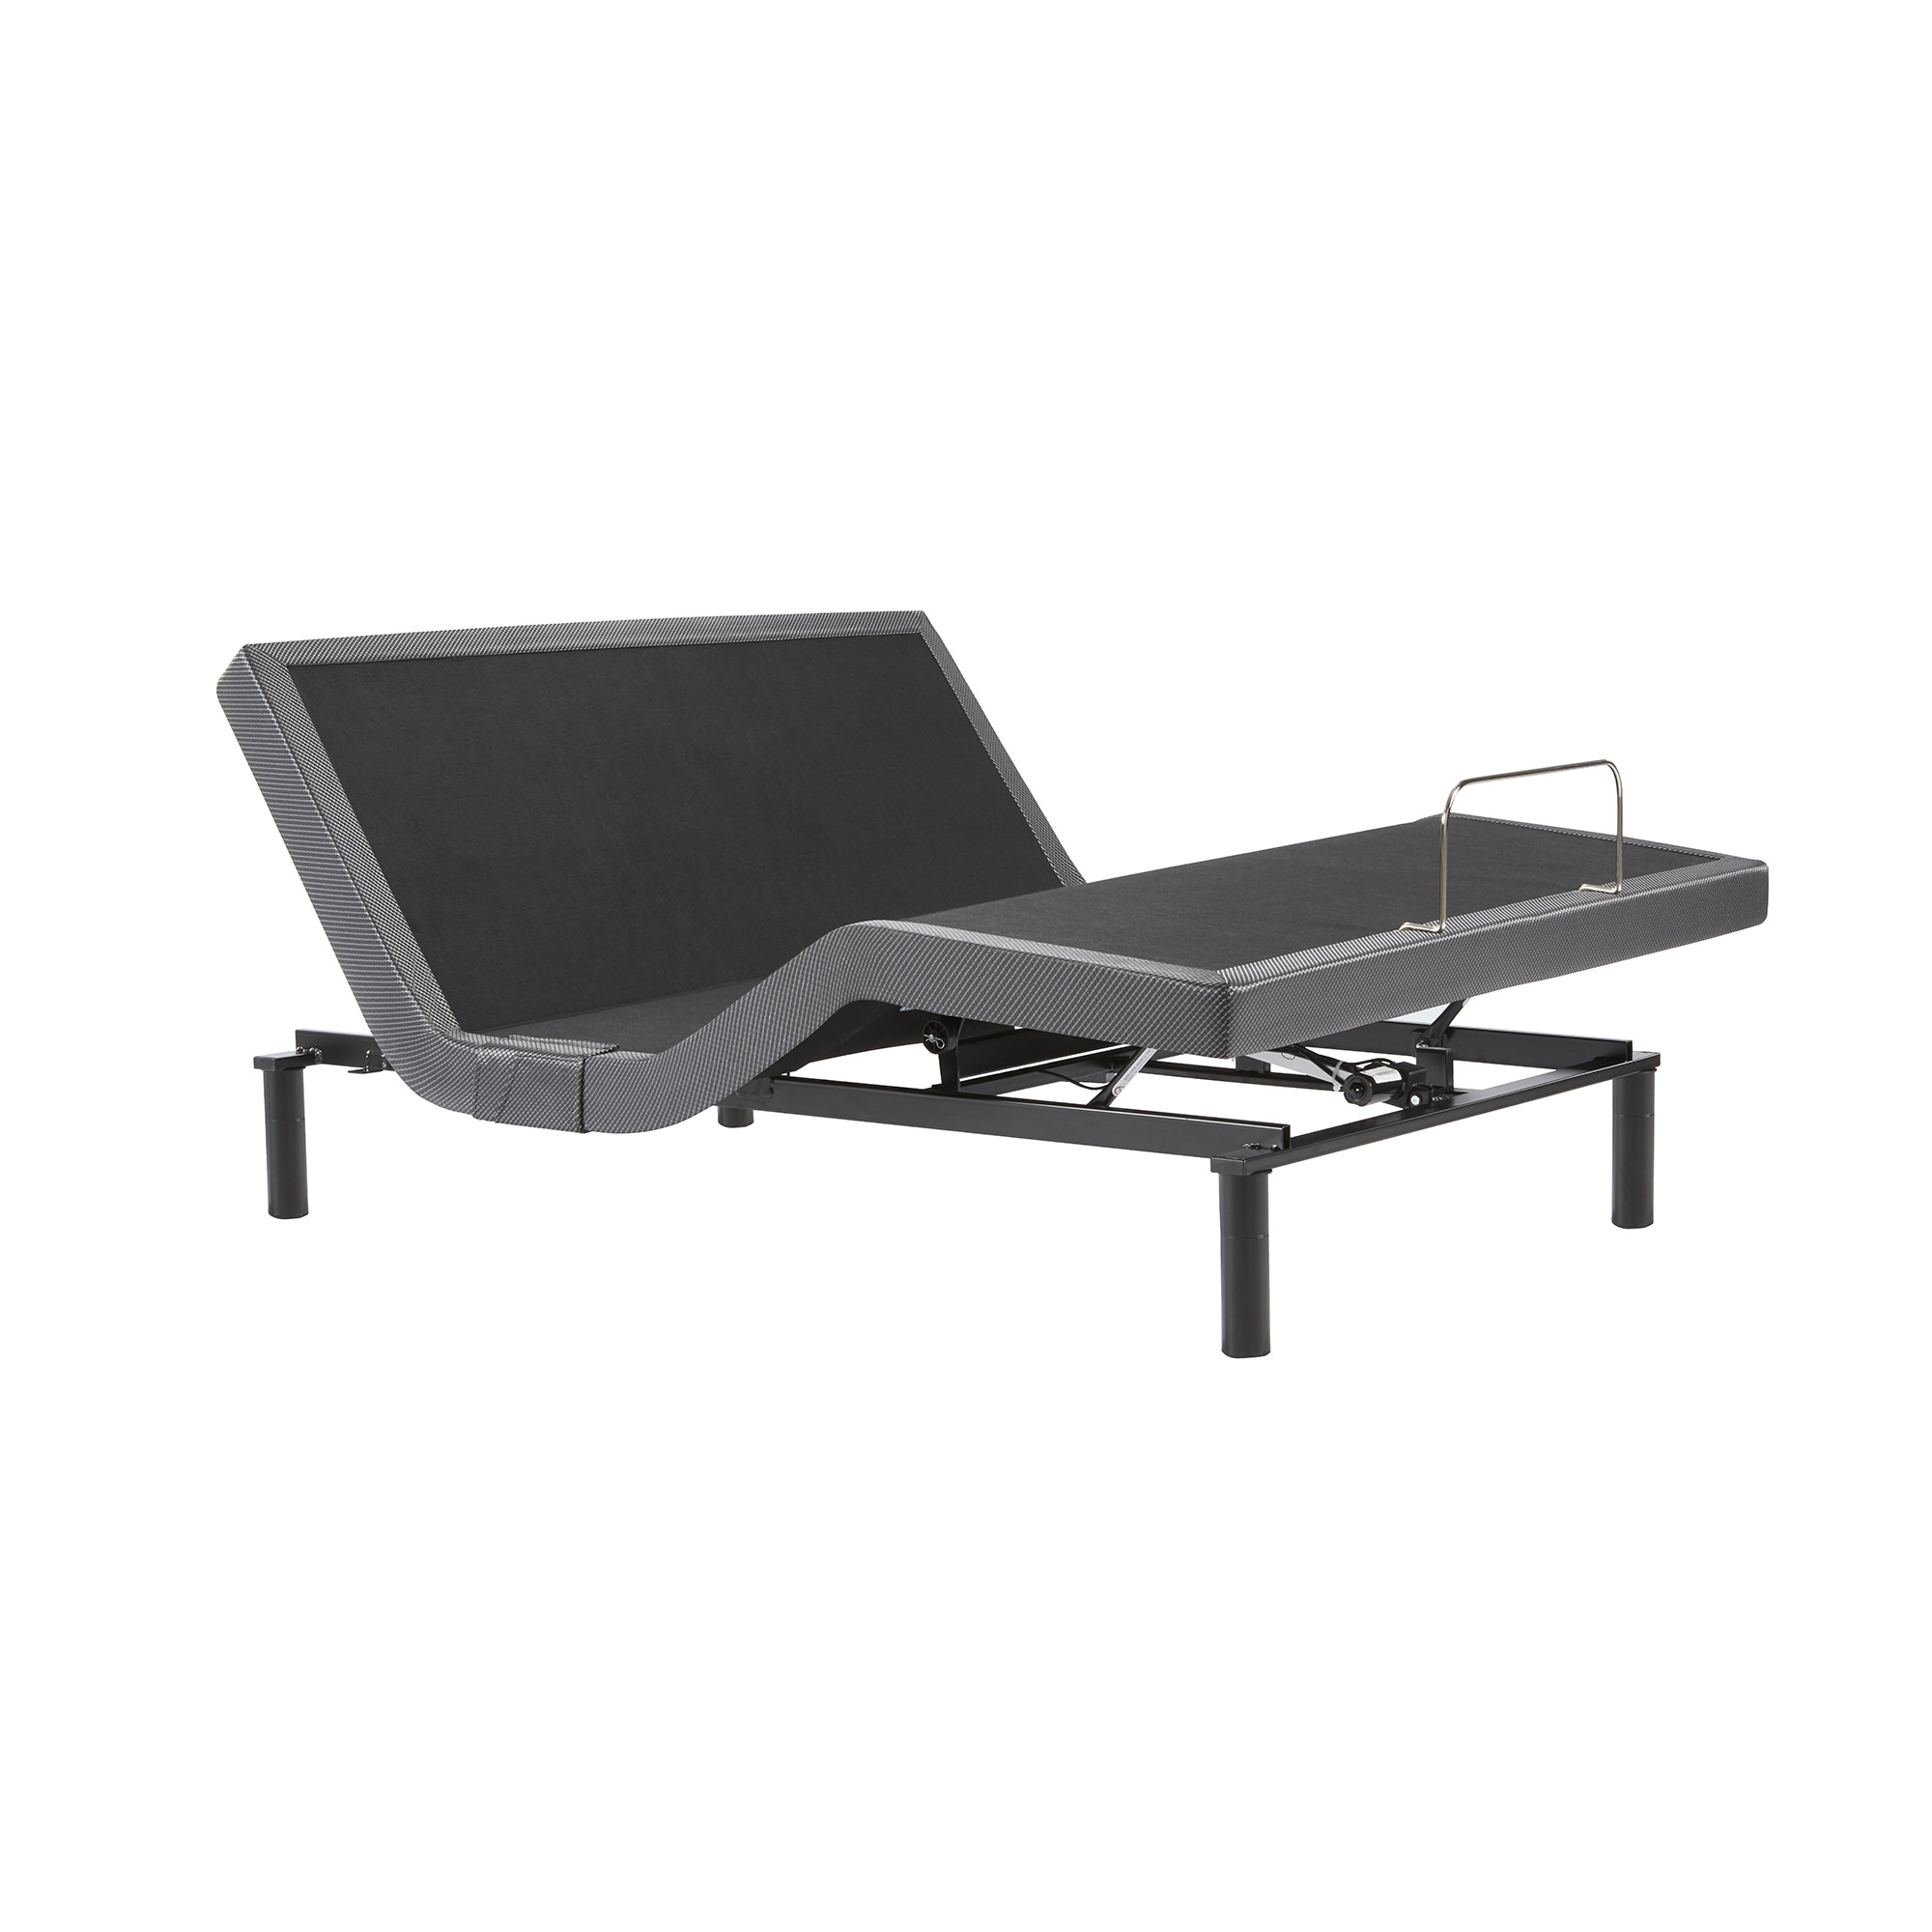 美國席夢思電動床架.Queen功能進階款 Beautyrest Advanced Motion Adjustable Base - Queen Size